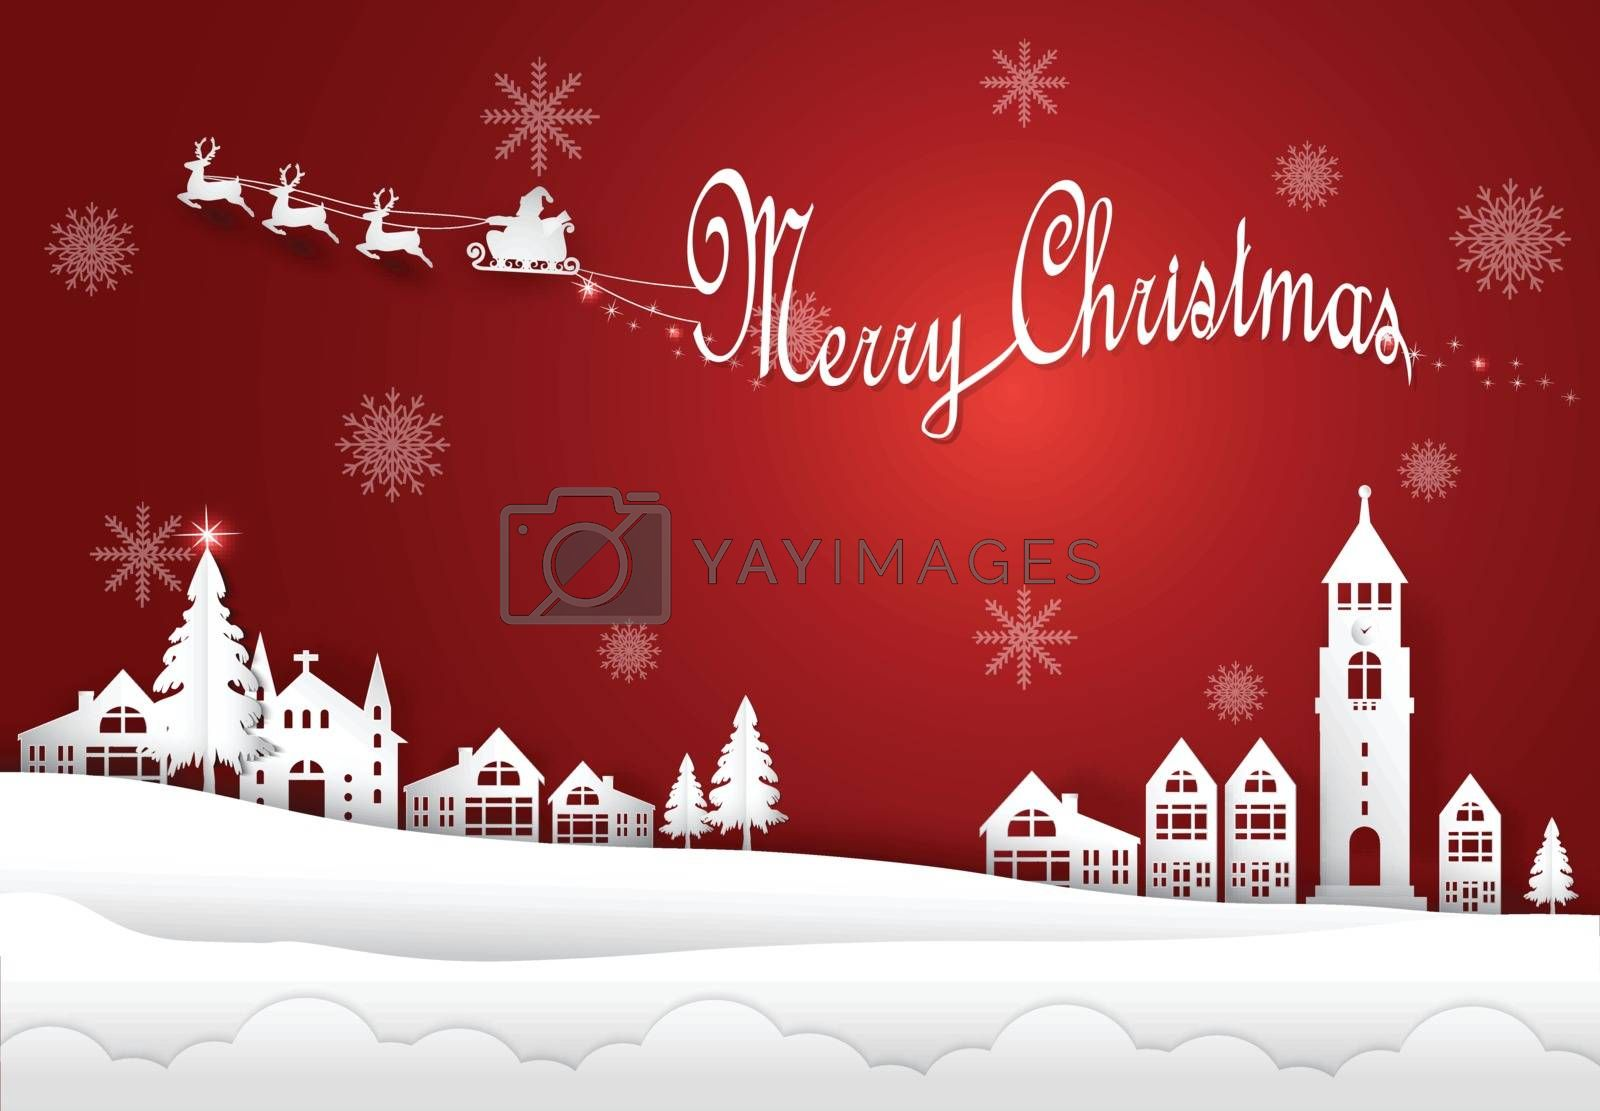 Winter holiday Santa and snow flake in city town on red background. Christmas season paper art style illustration.